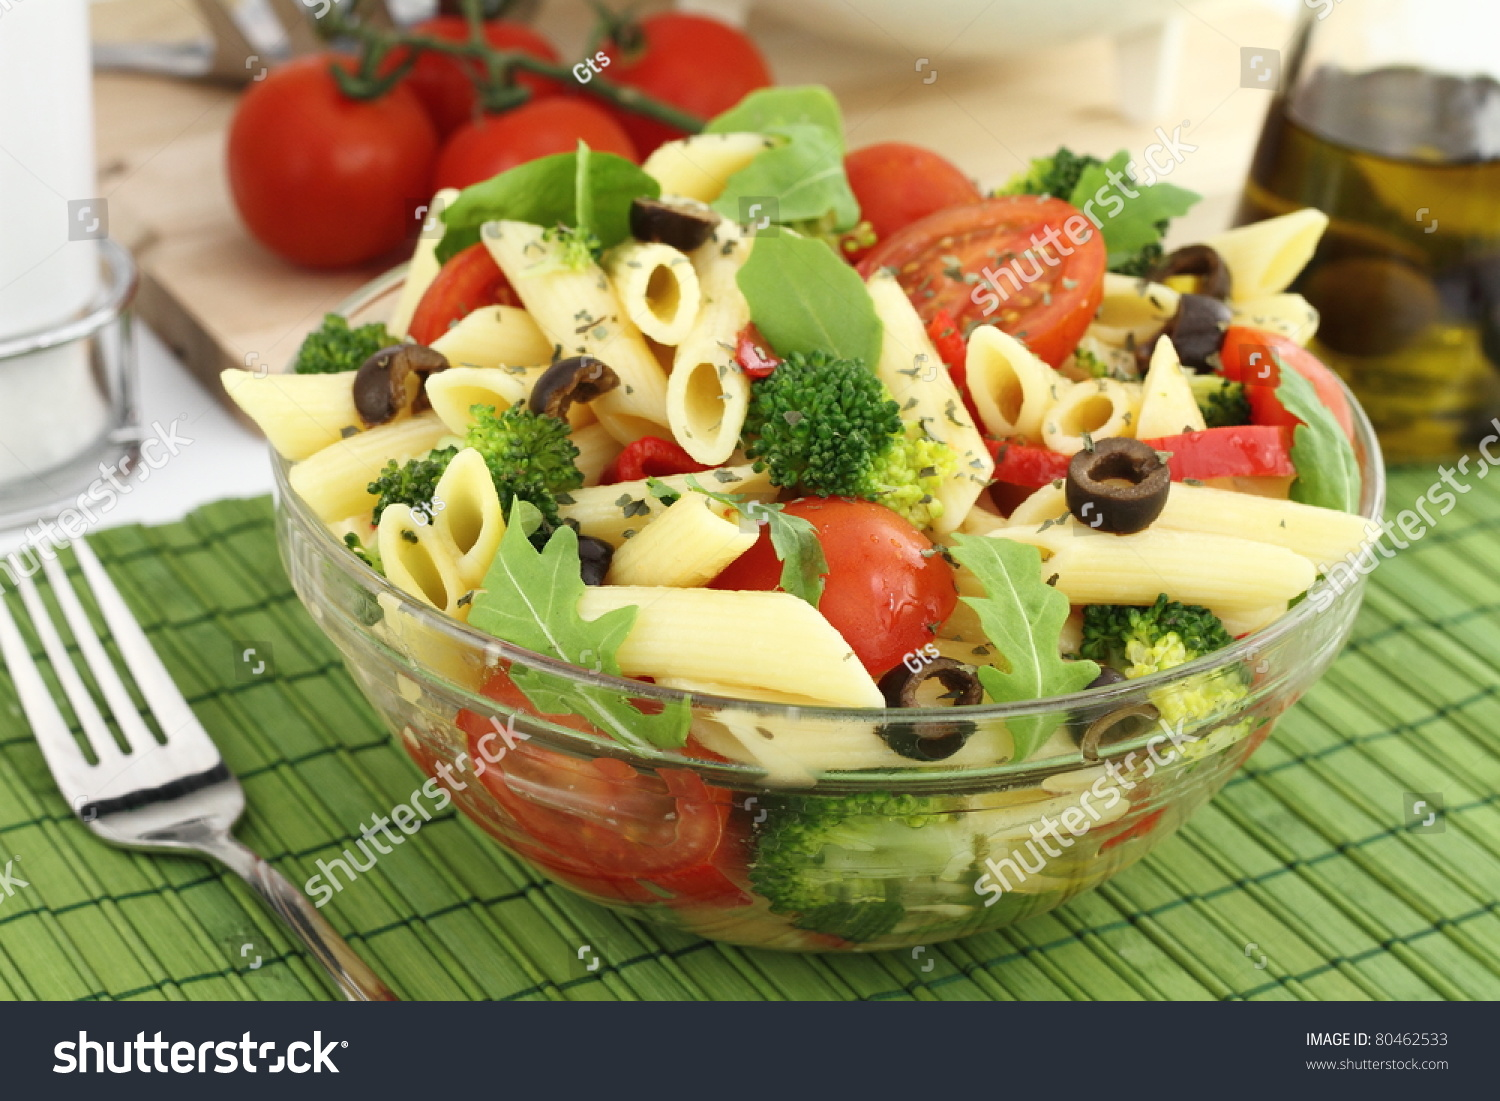 Penne Pasta Salad With Vegetables And Herbs Stock Photo ...